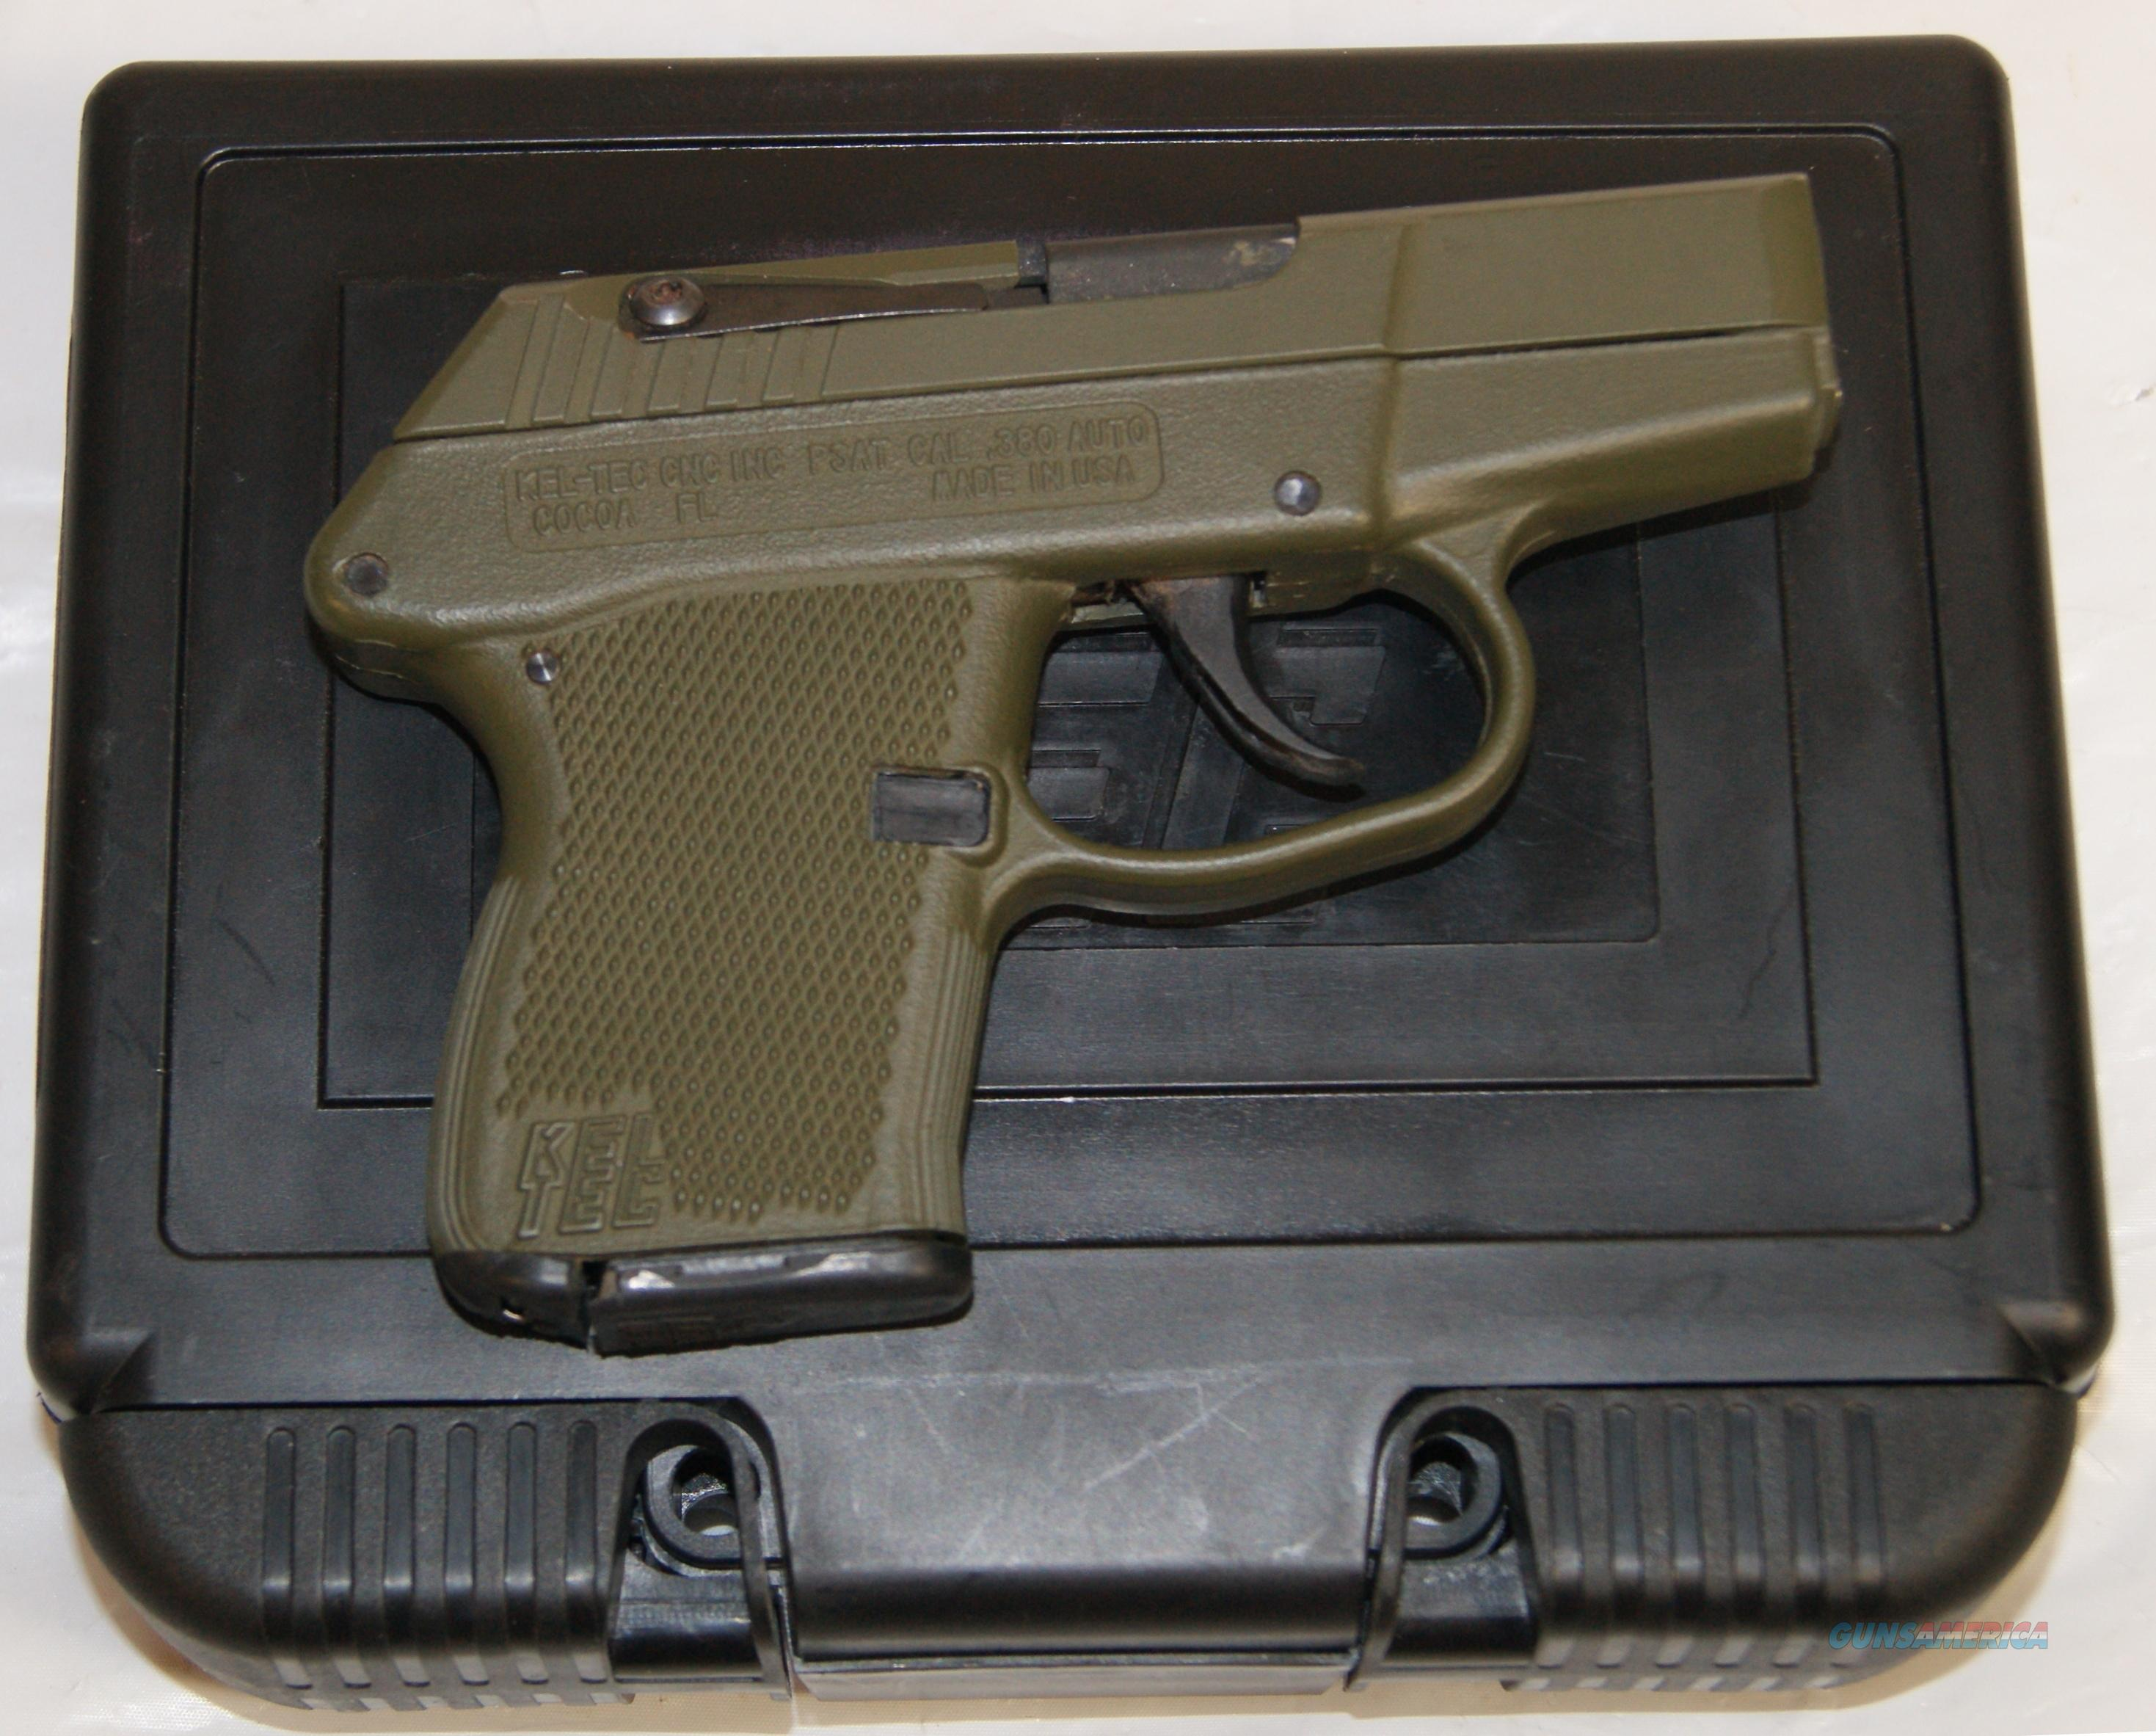 Kel-Tec .380 model P3AT 7 Shot Green Polymer  Guns > Pistols > Kel-Tec Pistols > Pocket Pistol Type